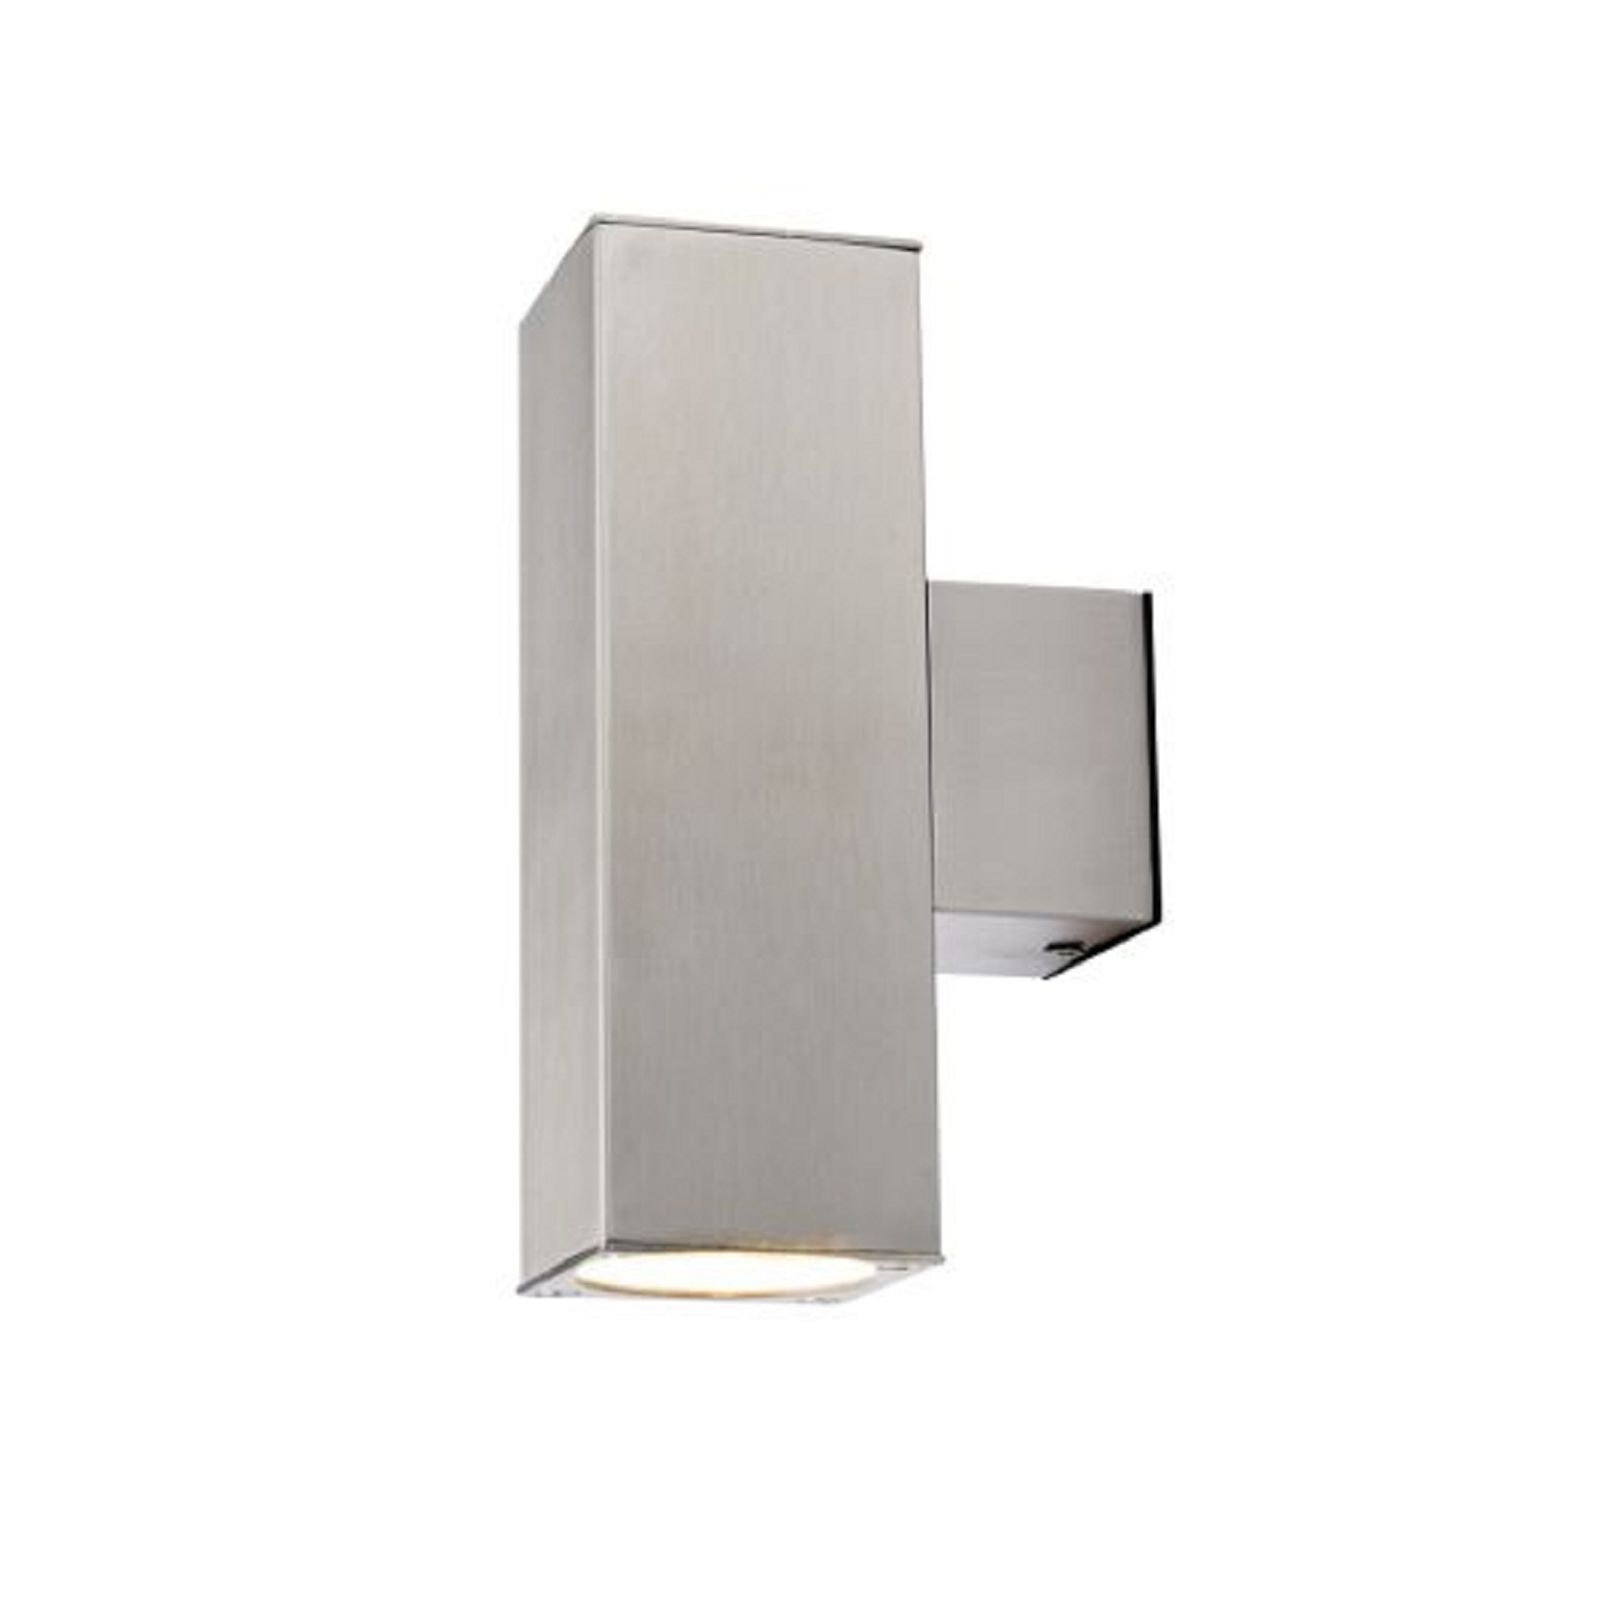 Find ena double silver square wall light at homebase visit your find ena double silver square wall light at homebase visit your local store for the aloadofball Gallery